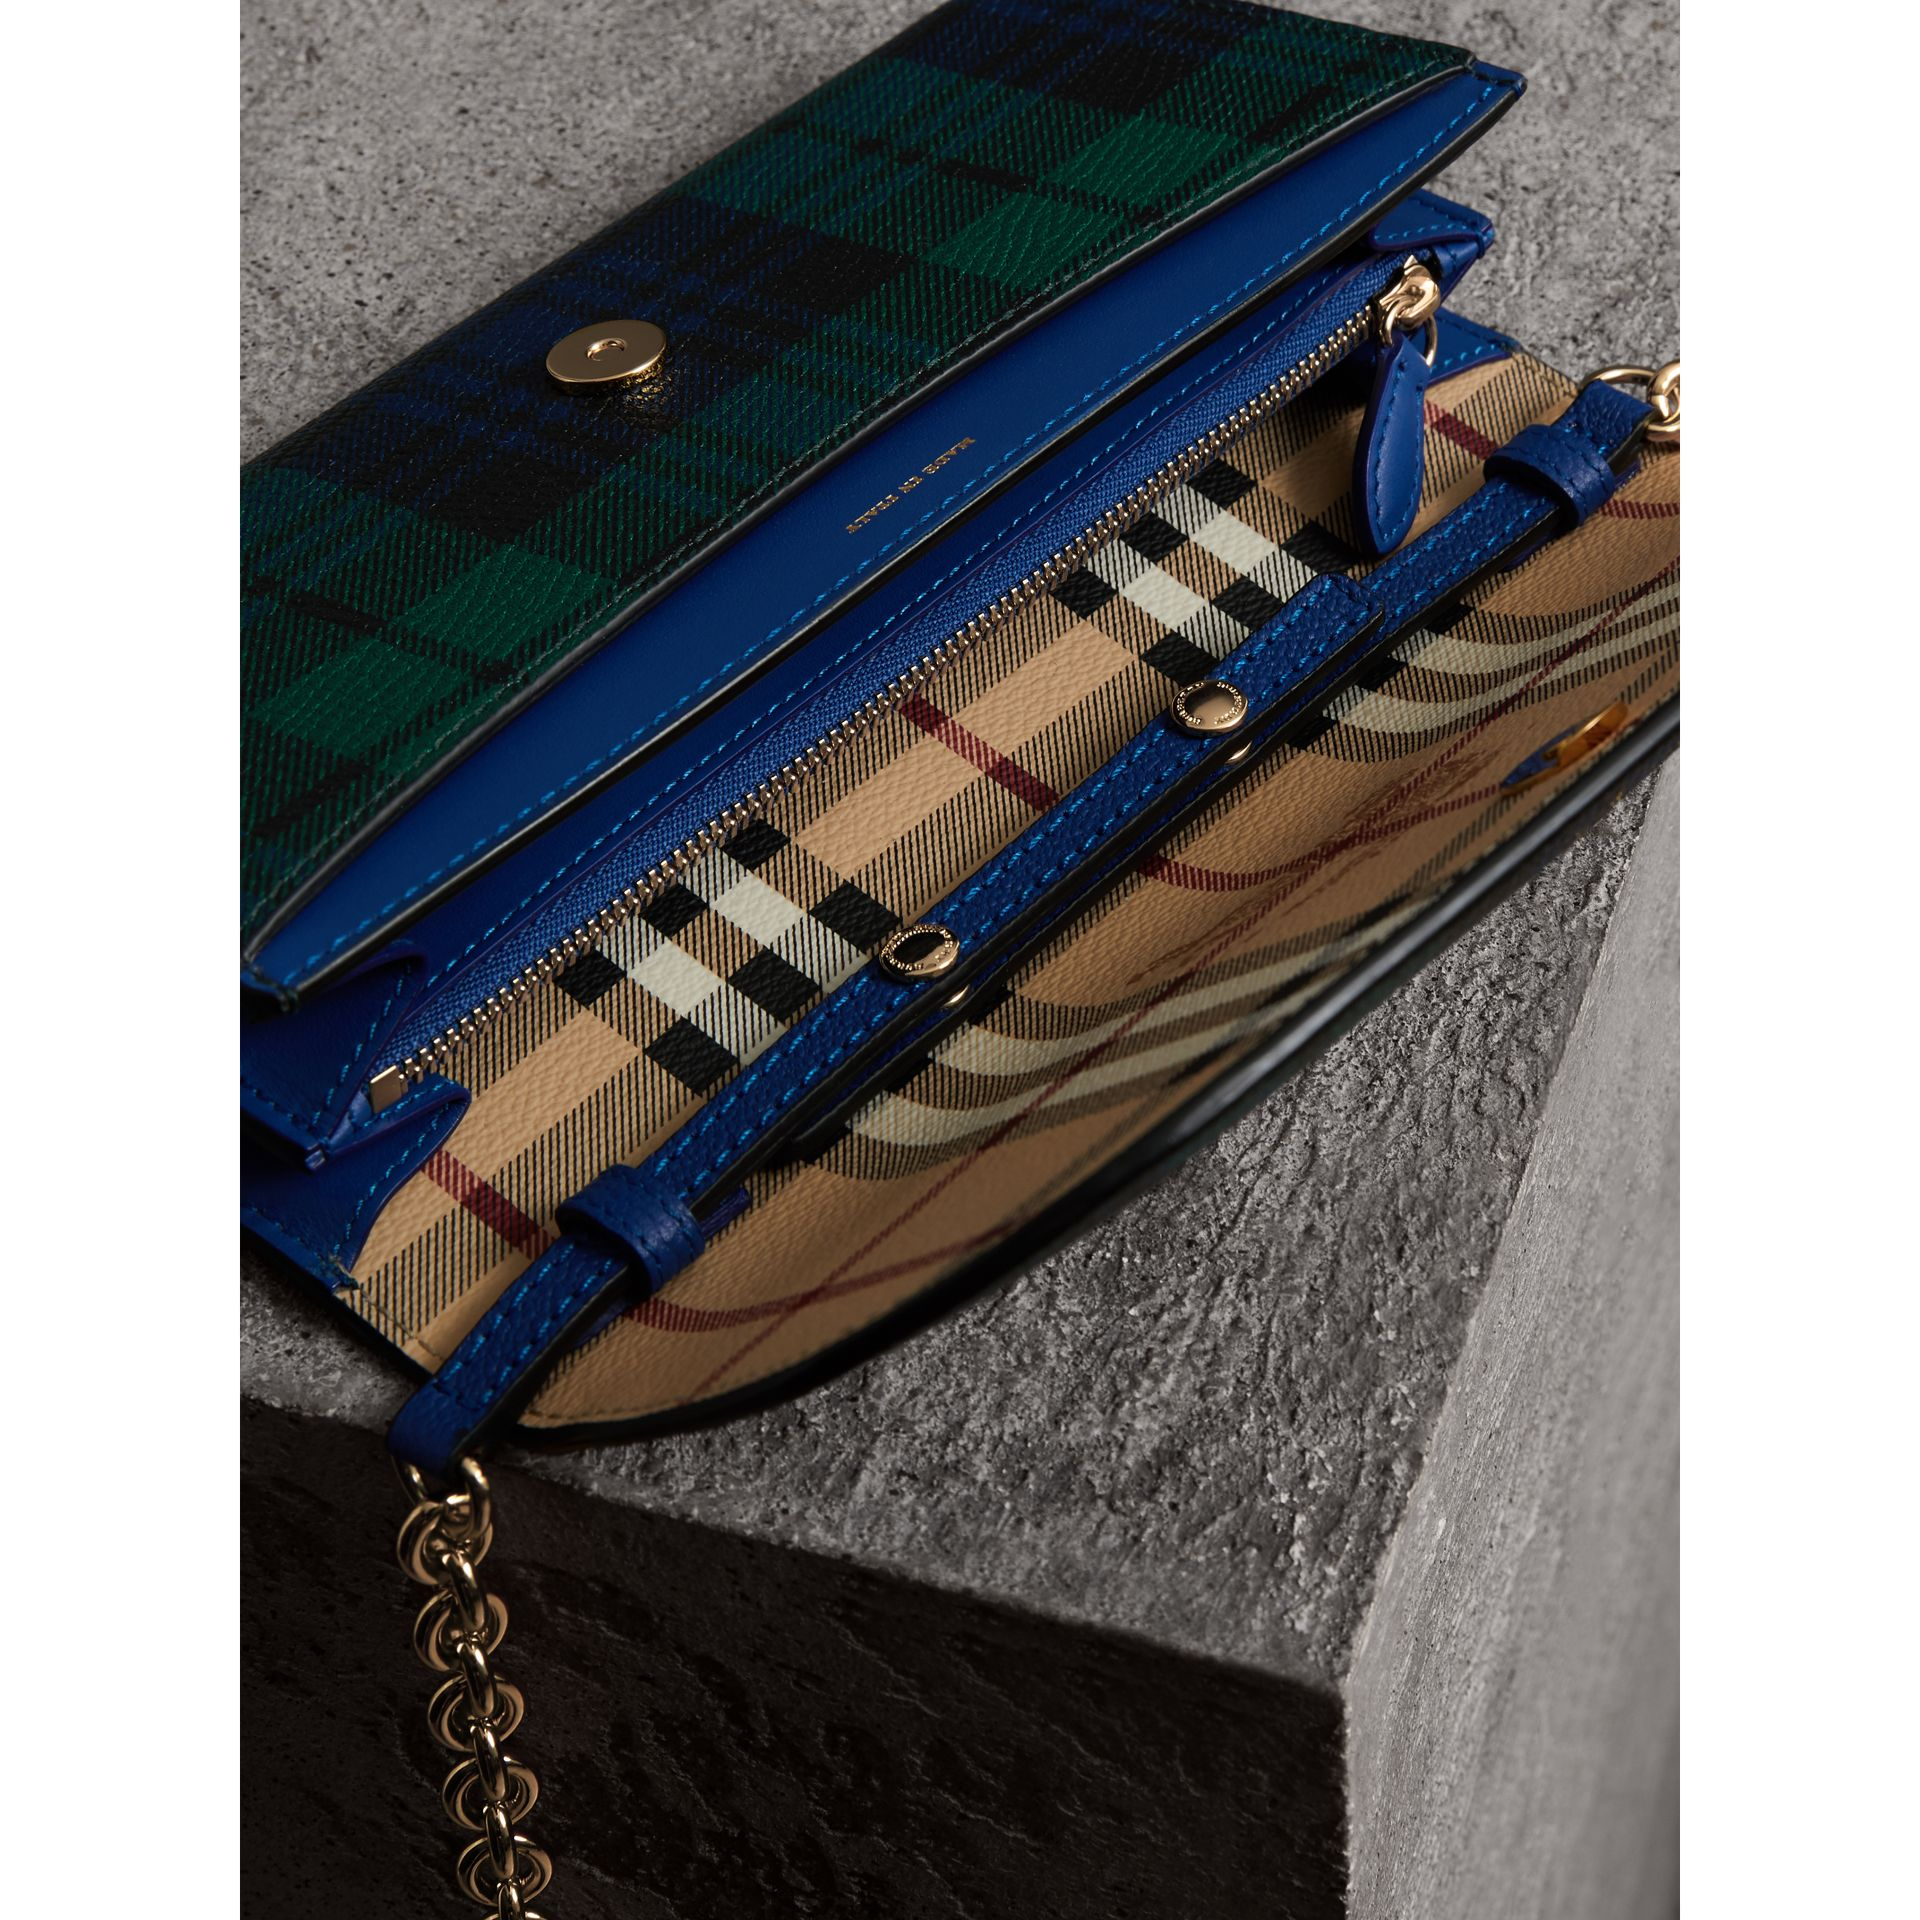 Creature Appliqué Tartan Leather Wallet with Chain in Bright Navy - Women | Burberry - gallery image 5